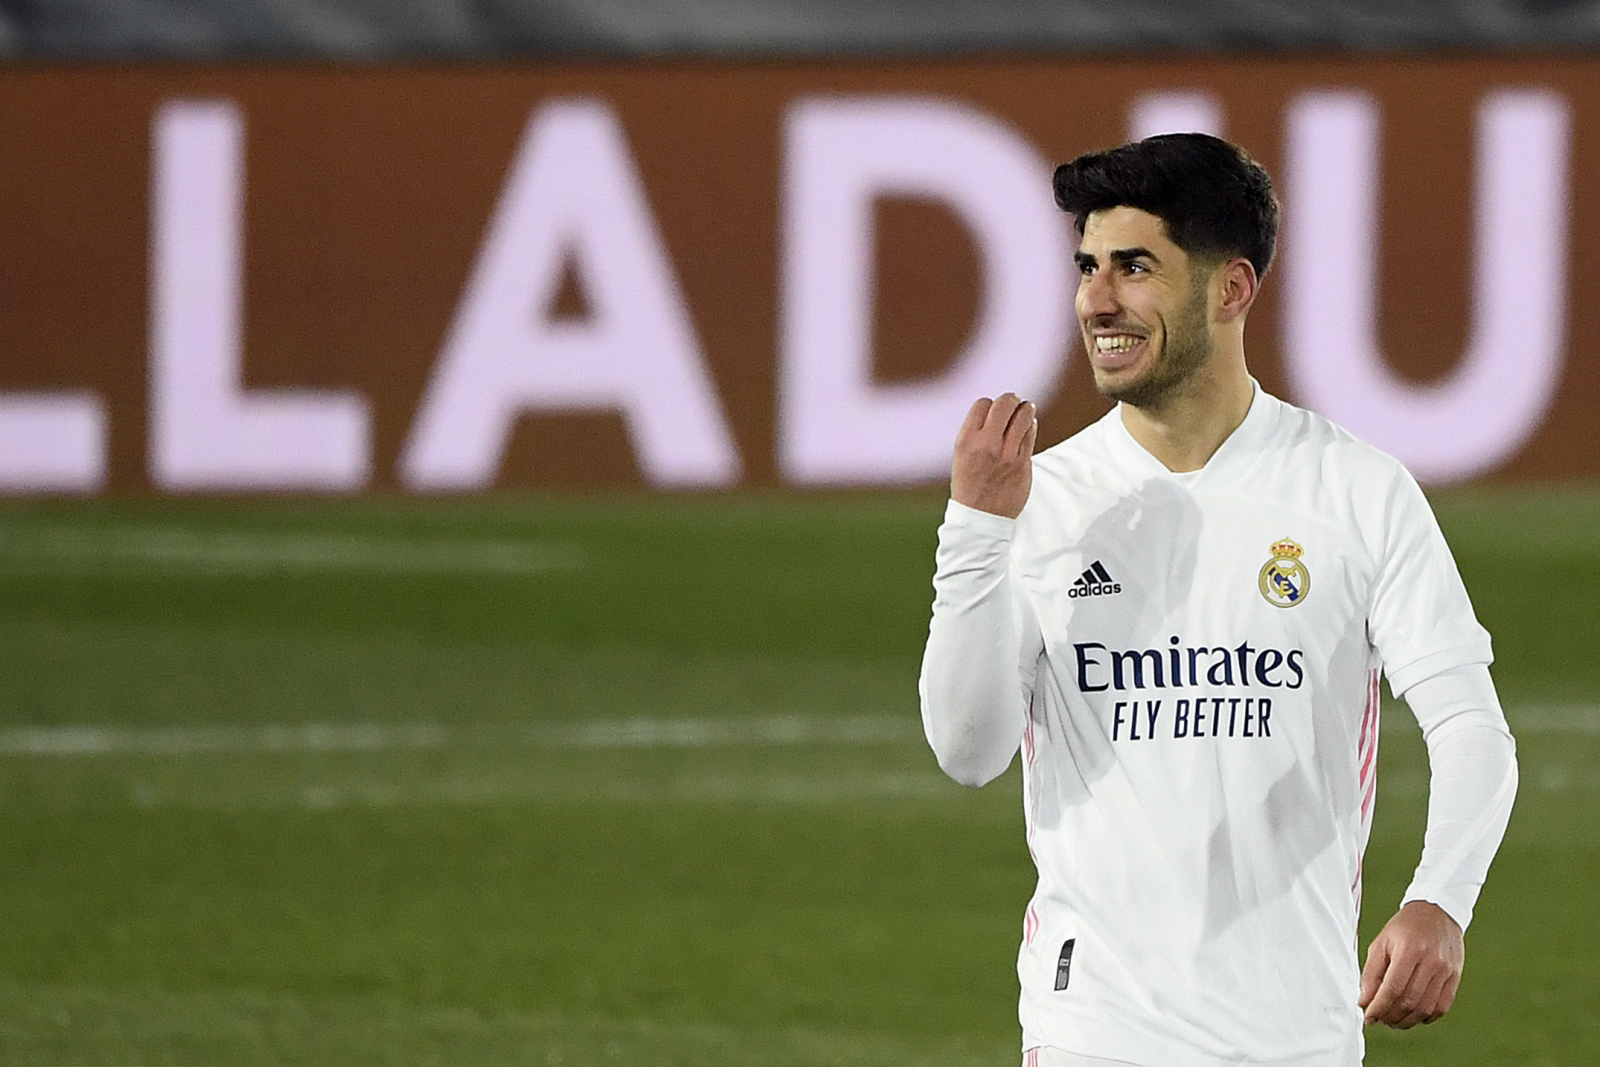 Real Madrid: Why is Marco Asensio anonymous in most games?